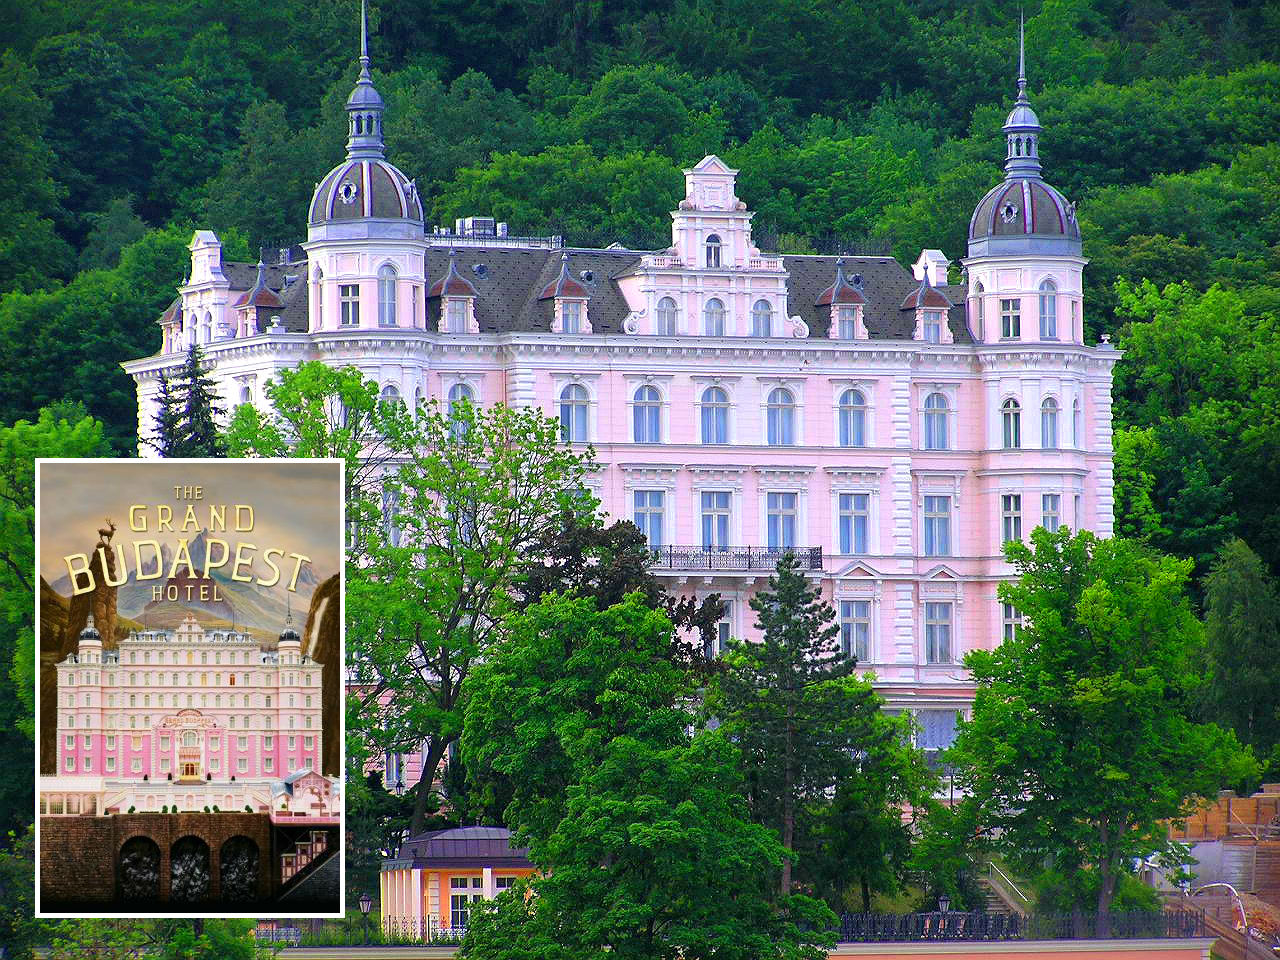 1. The Grand Budapest Hotel - Palace Bristol, Karlovy Vary